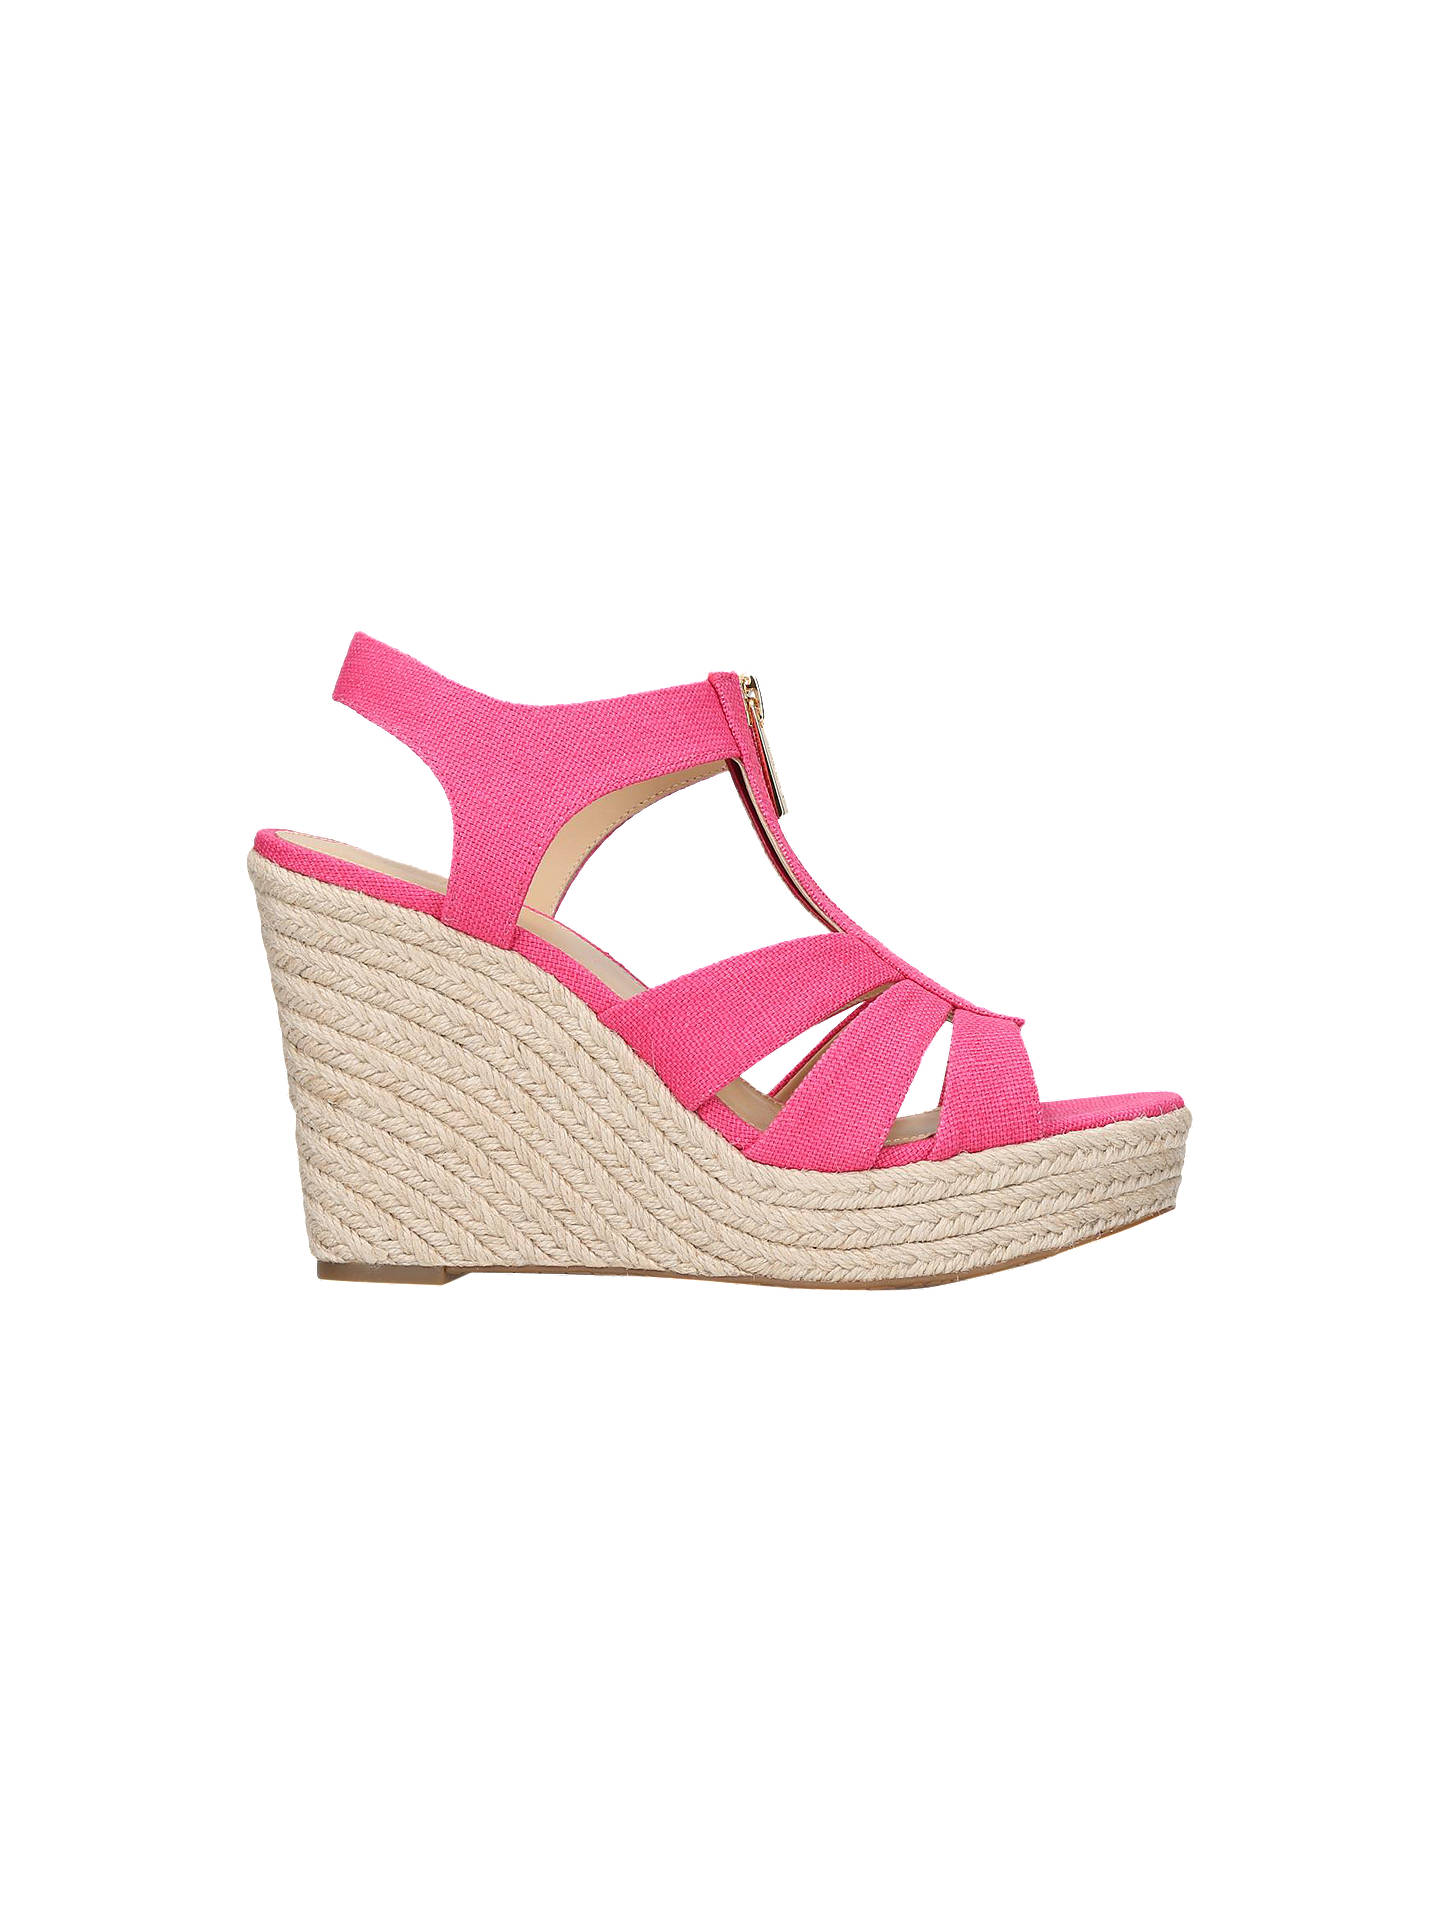 ee40caa7a76 Buy MICHAEL Michael Kors Berkley Wedge Heel Sandals